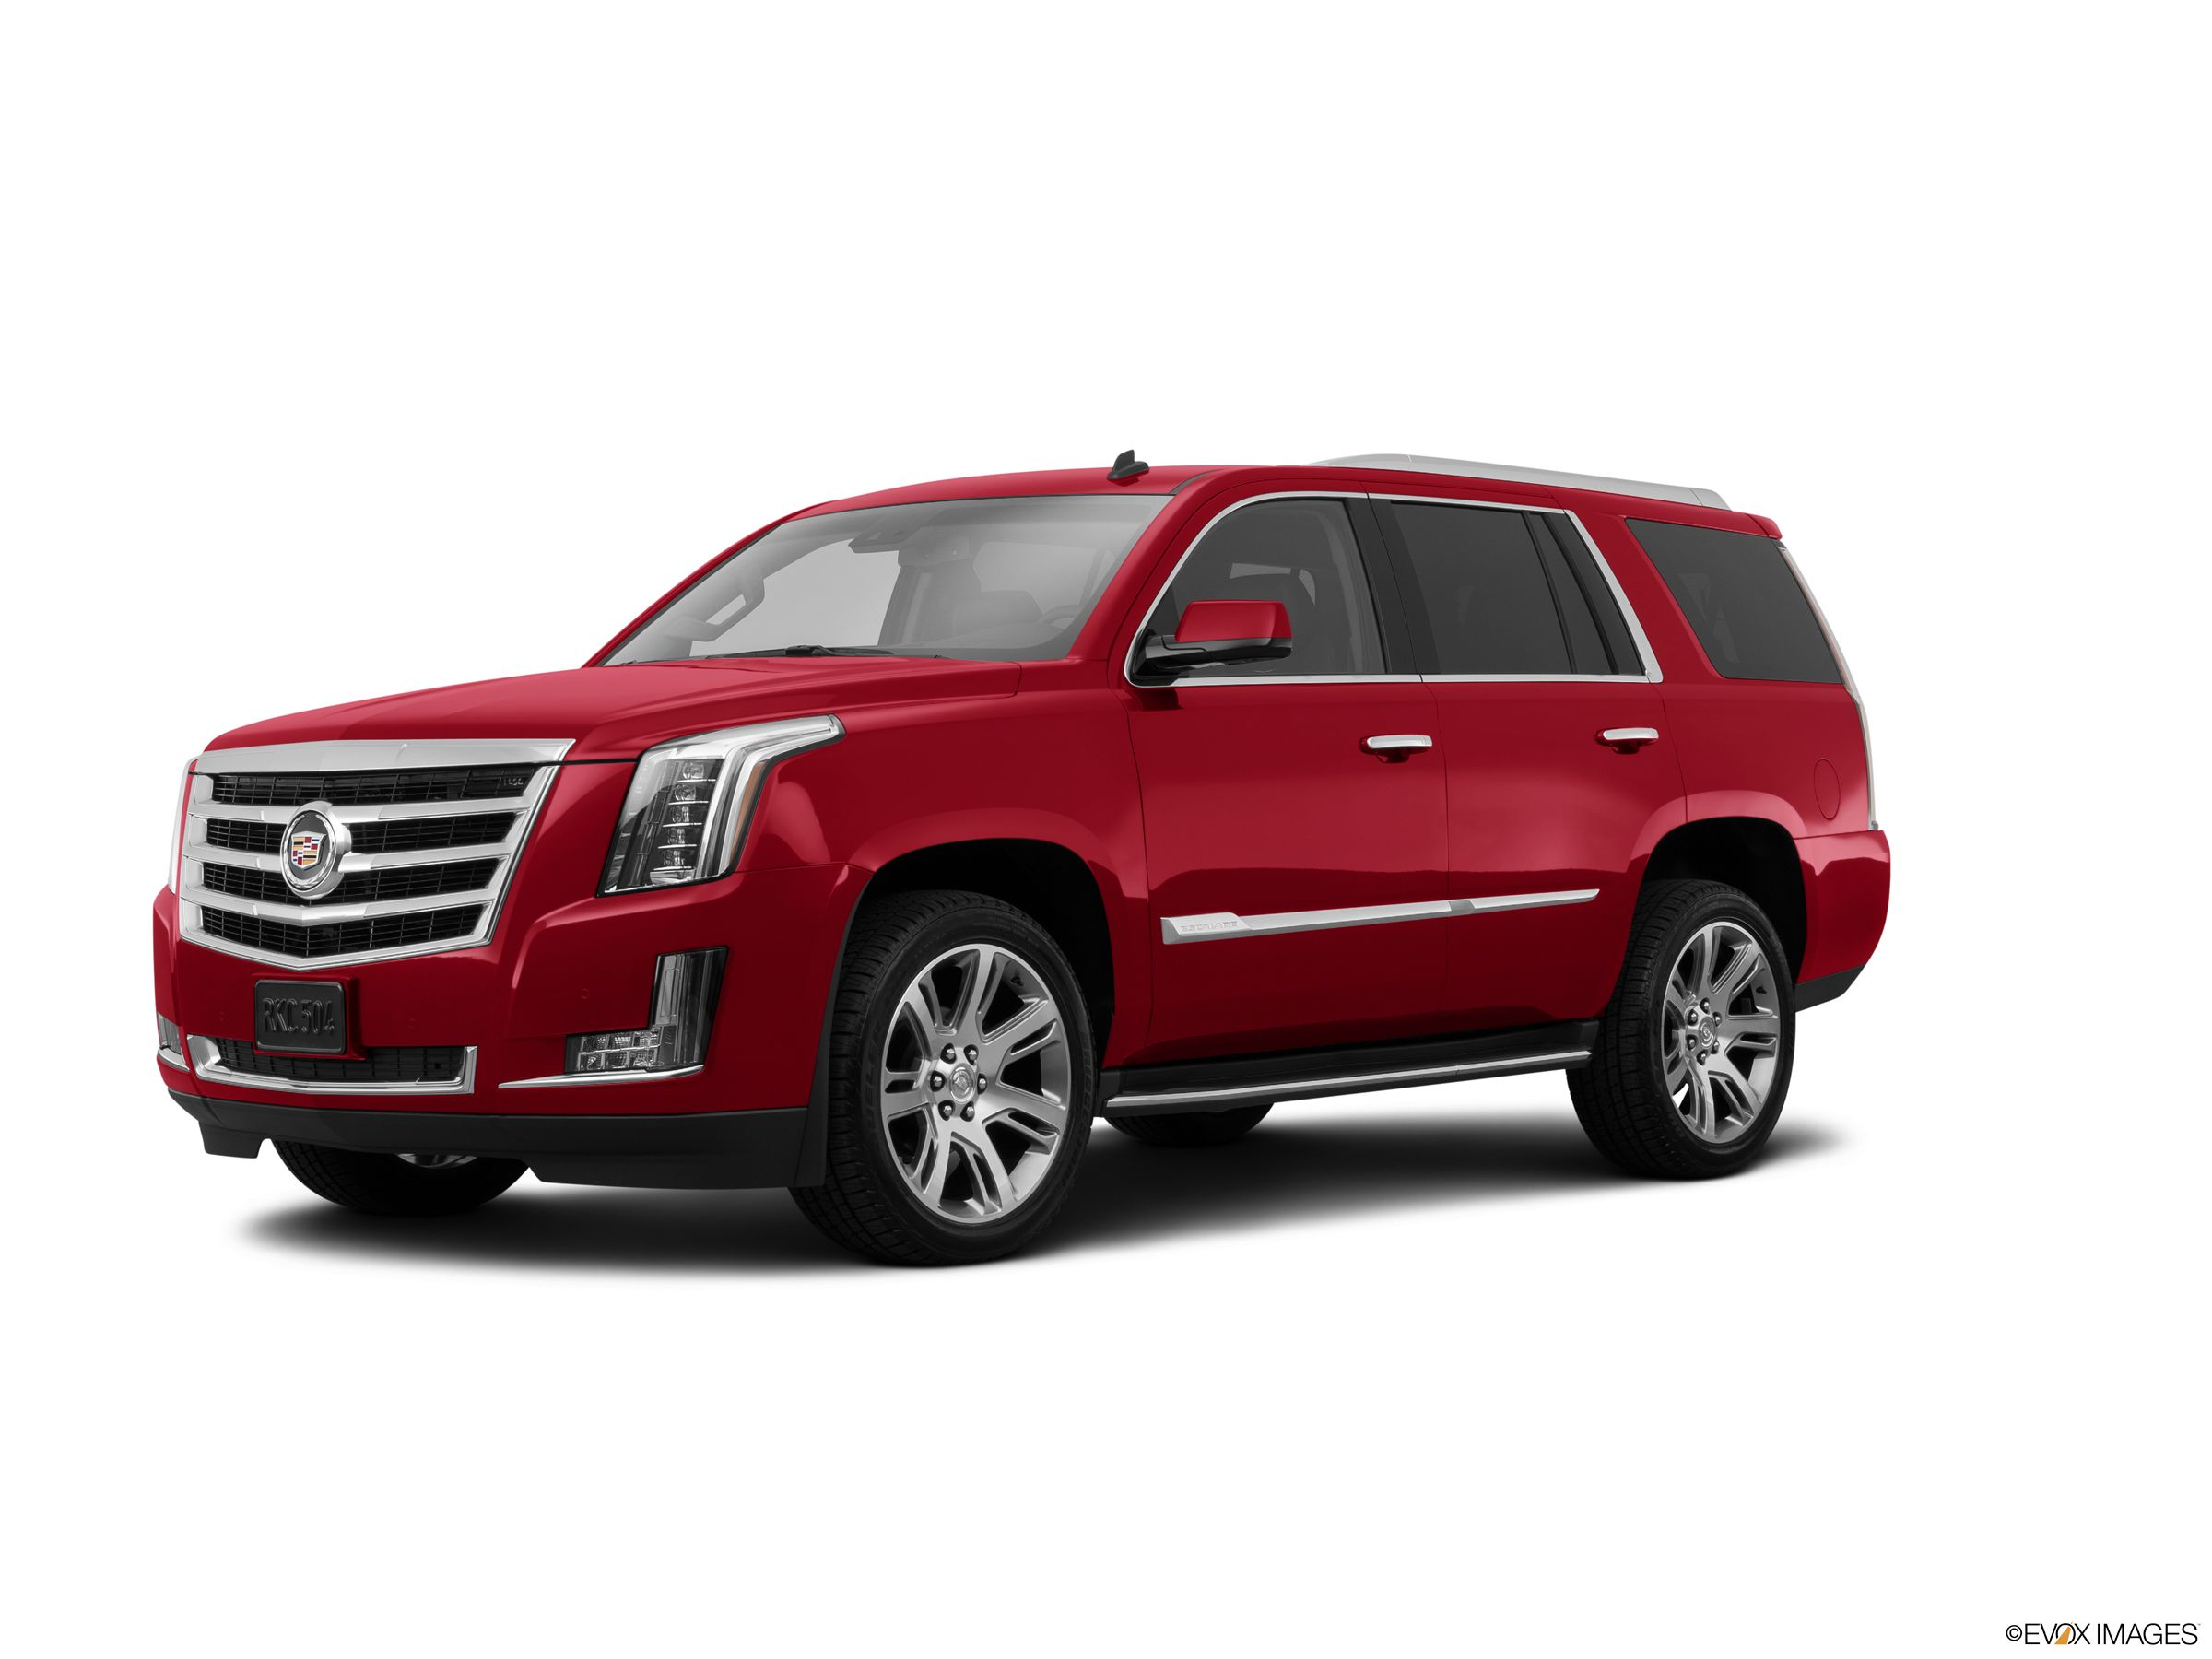 Find this pin and more on cleveland 2015 cadillac escalade by crestmont_c